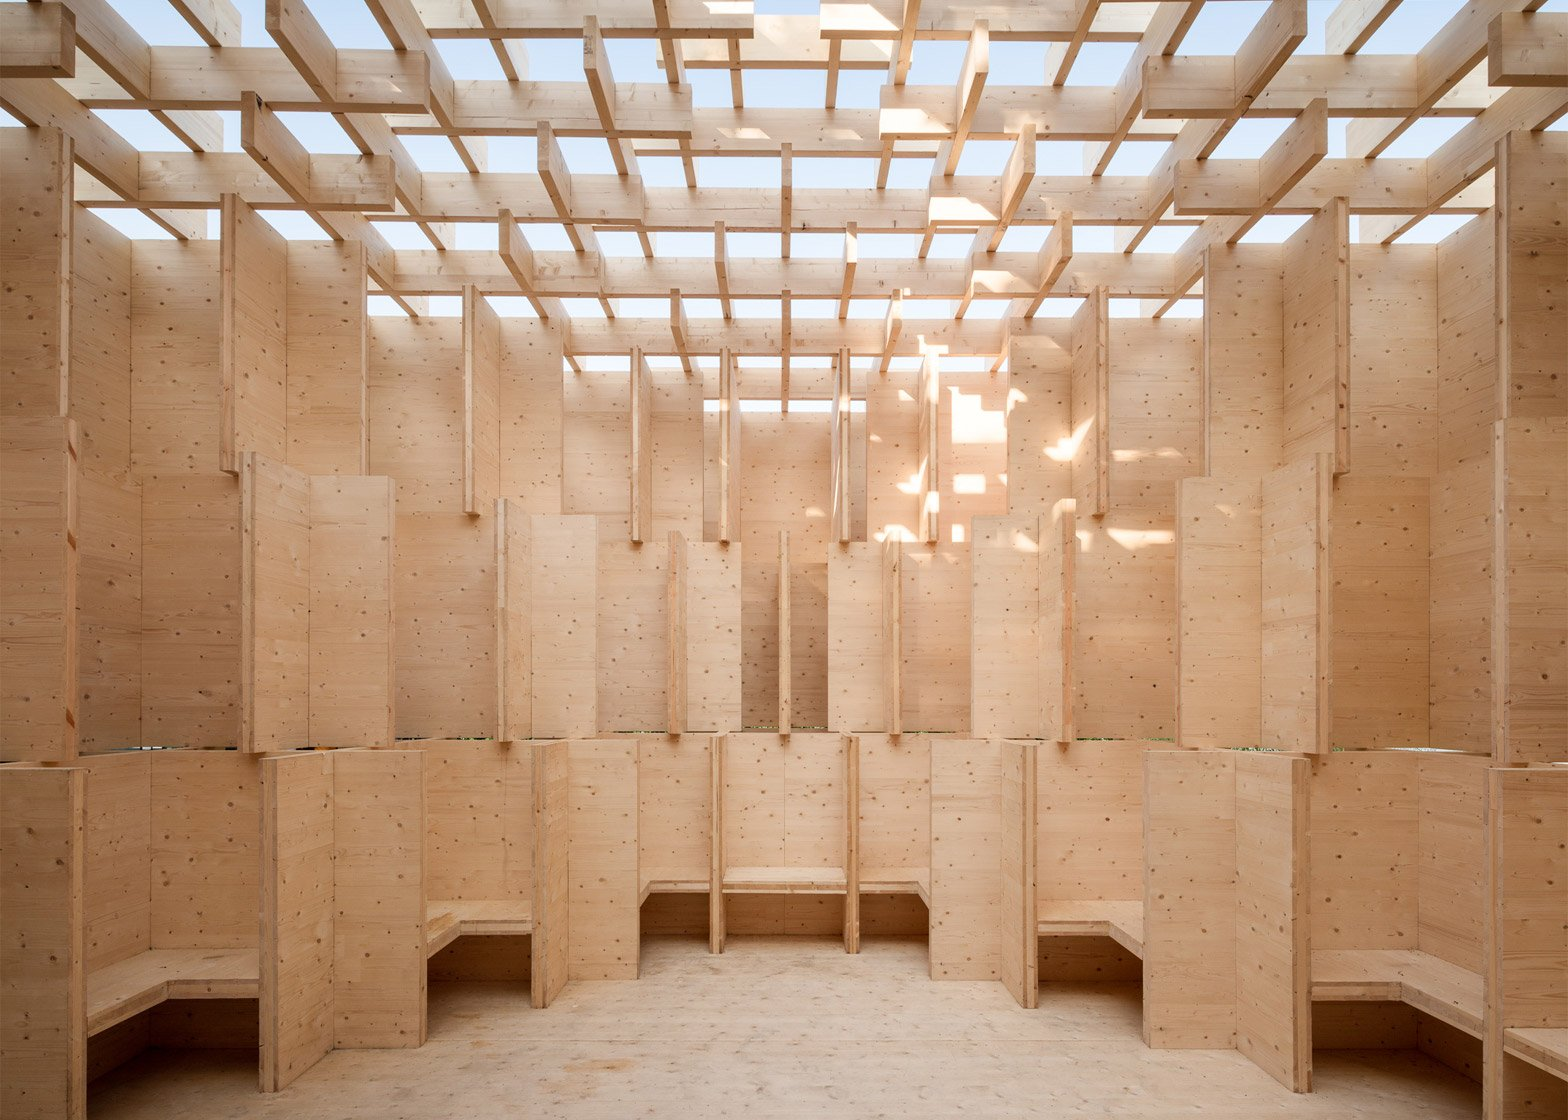 Forest of Venice installation at the Venice Architectural Biennale 2016